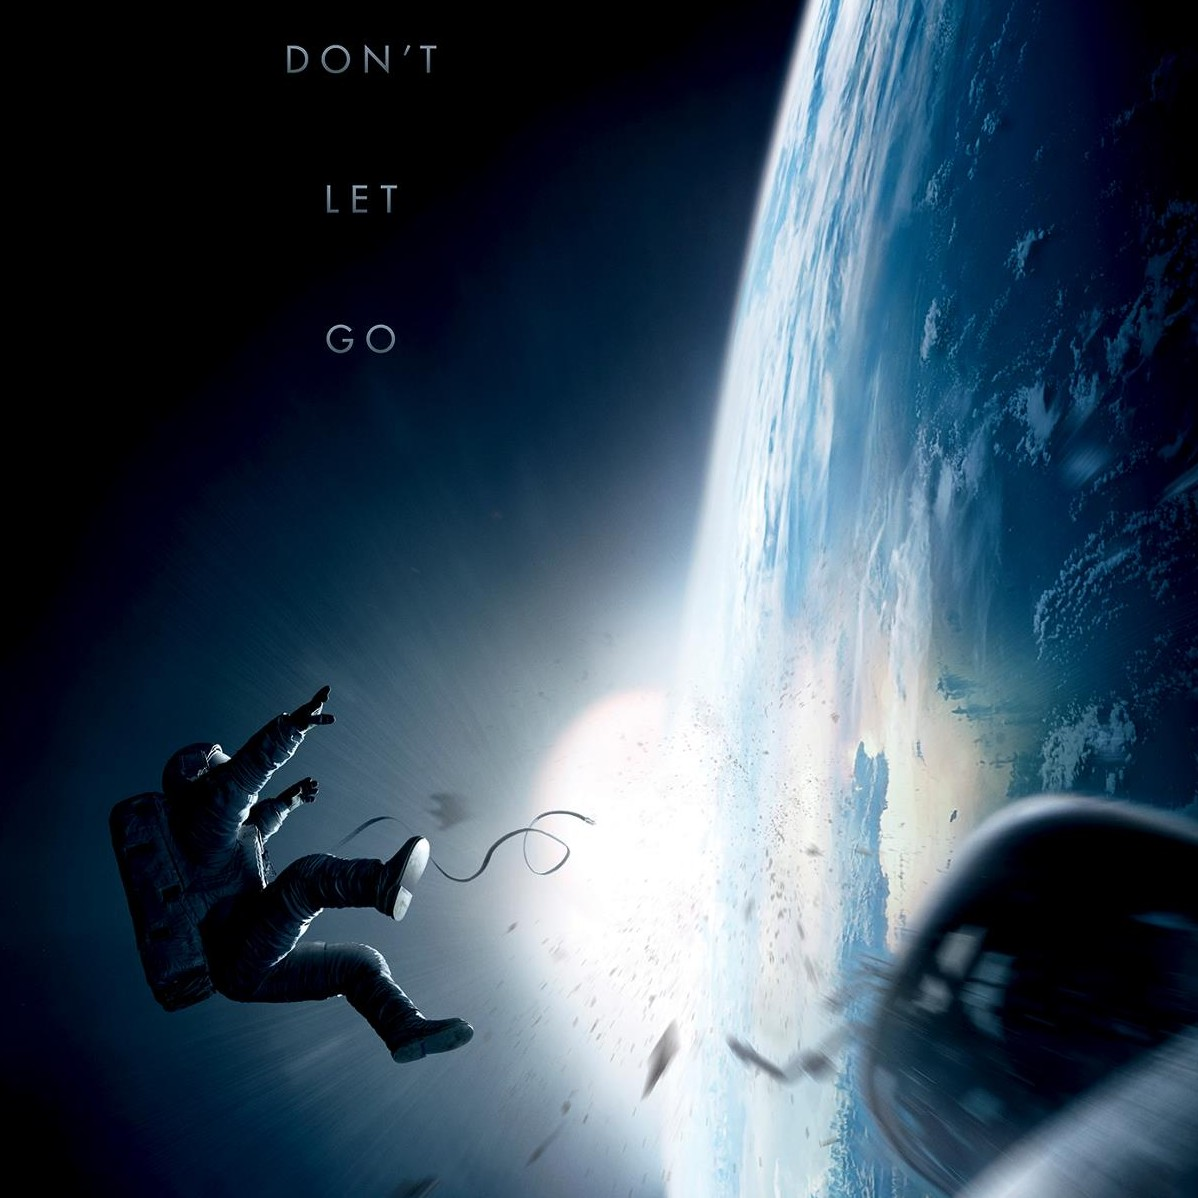 In Theaters - October 04, 2013